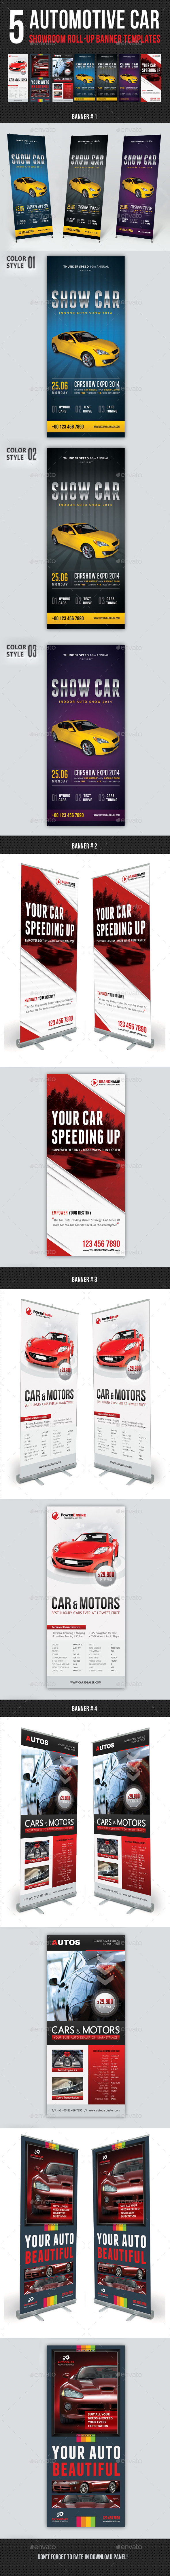 GraphicRiver 5 in 1 Automotive Car Showroom Banner Bundle 11844639